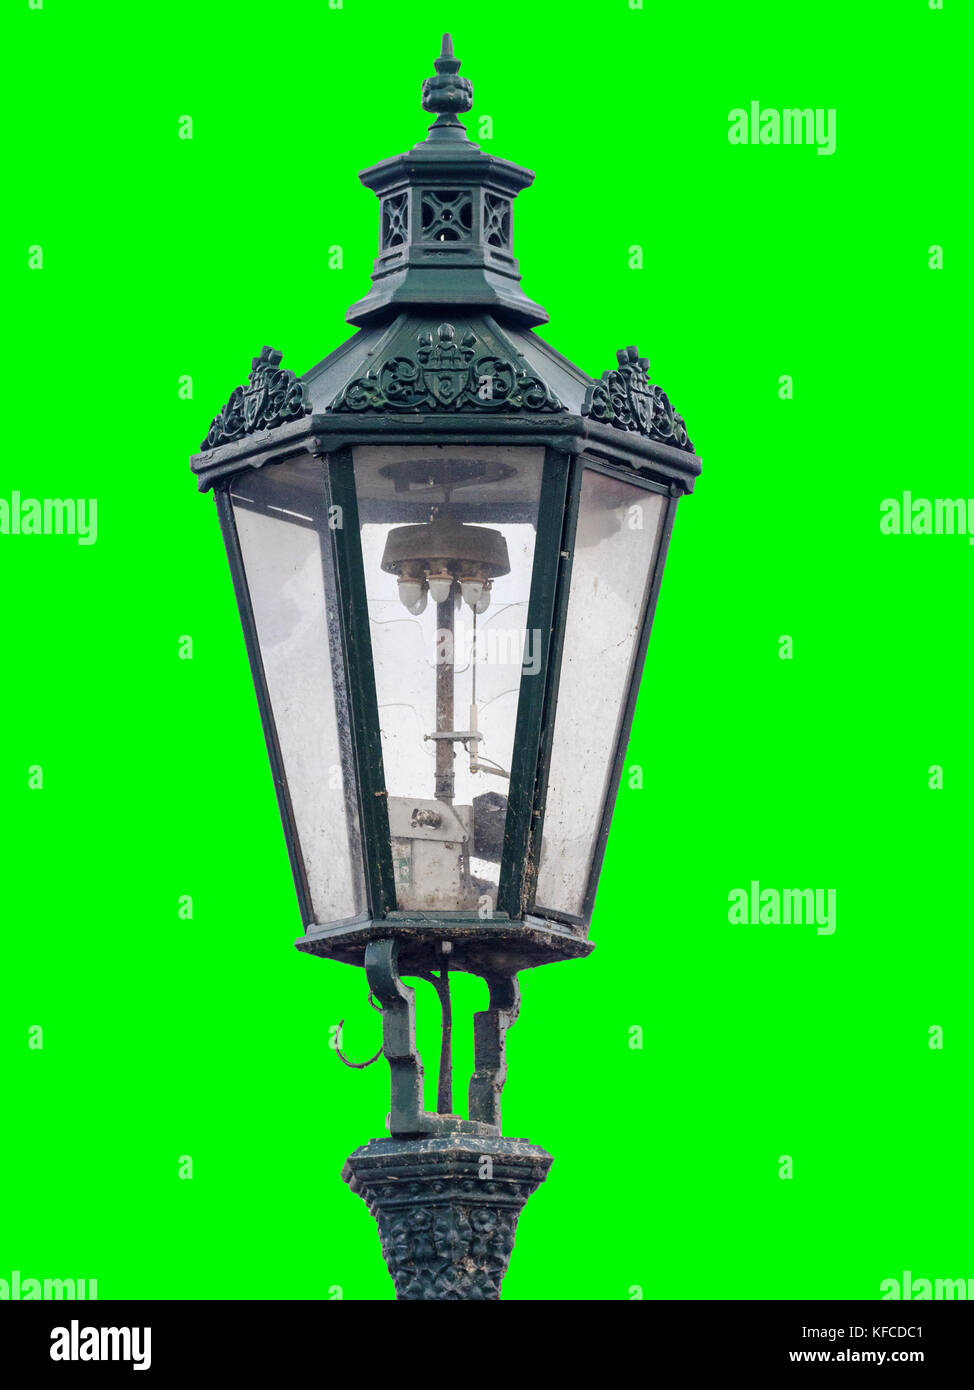 vintage street lamps in the old town of prague on green background